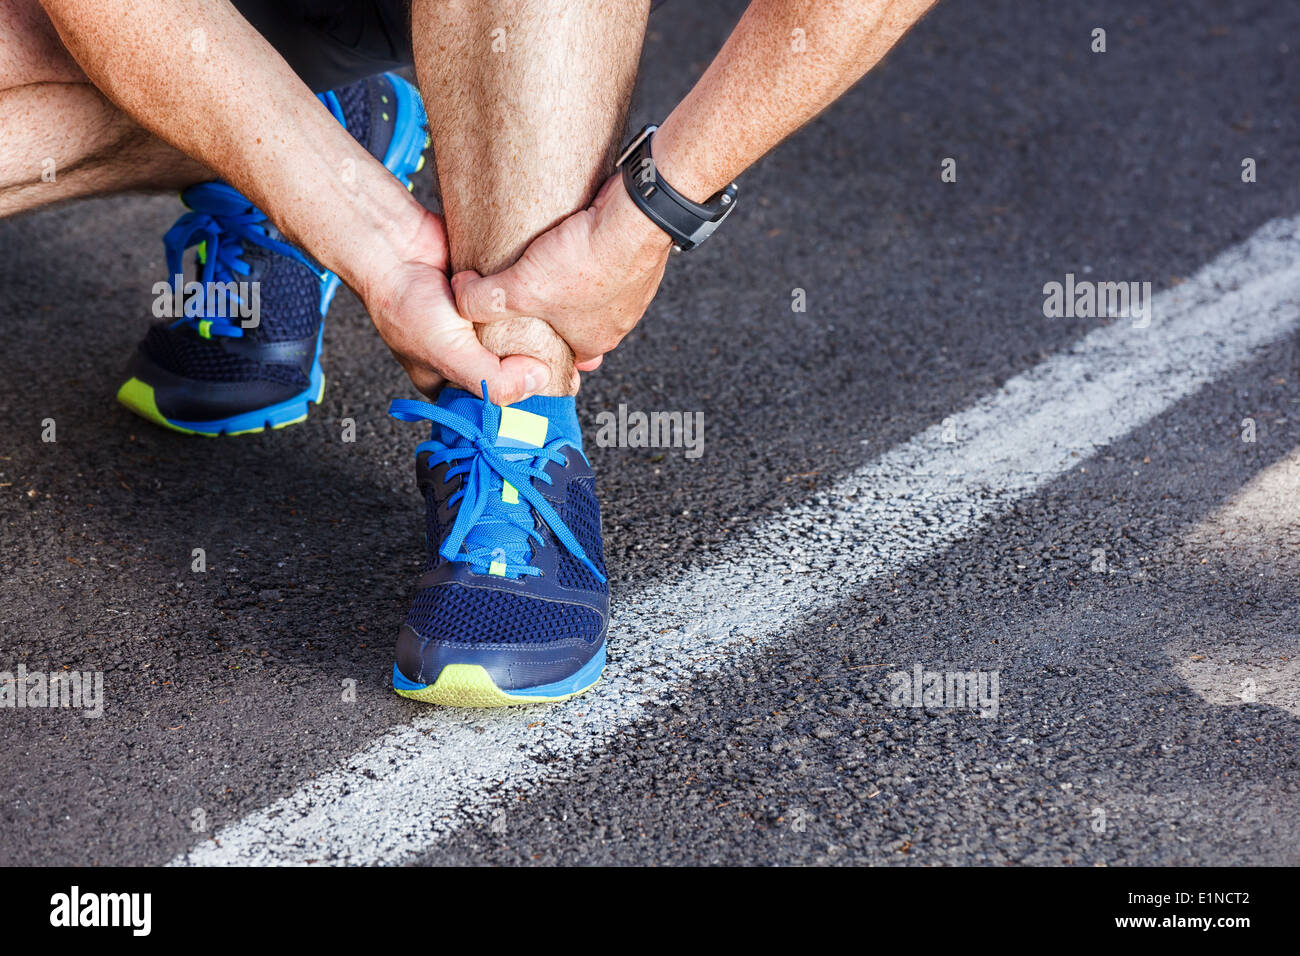 Broken twisted ankle - running sport injury. - Stock Image